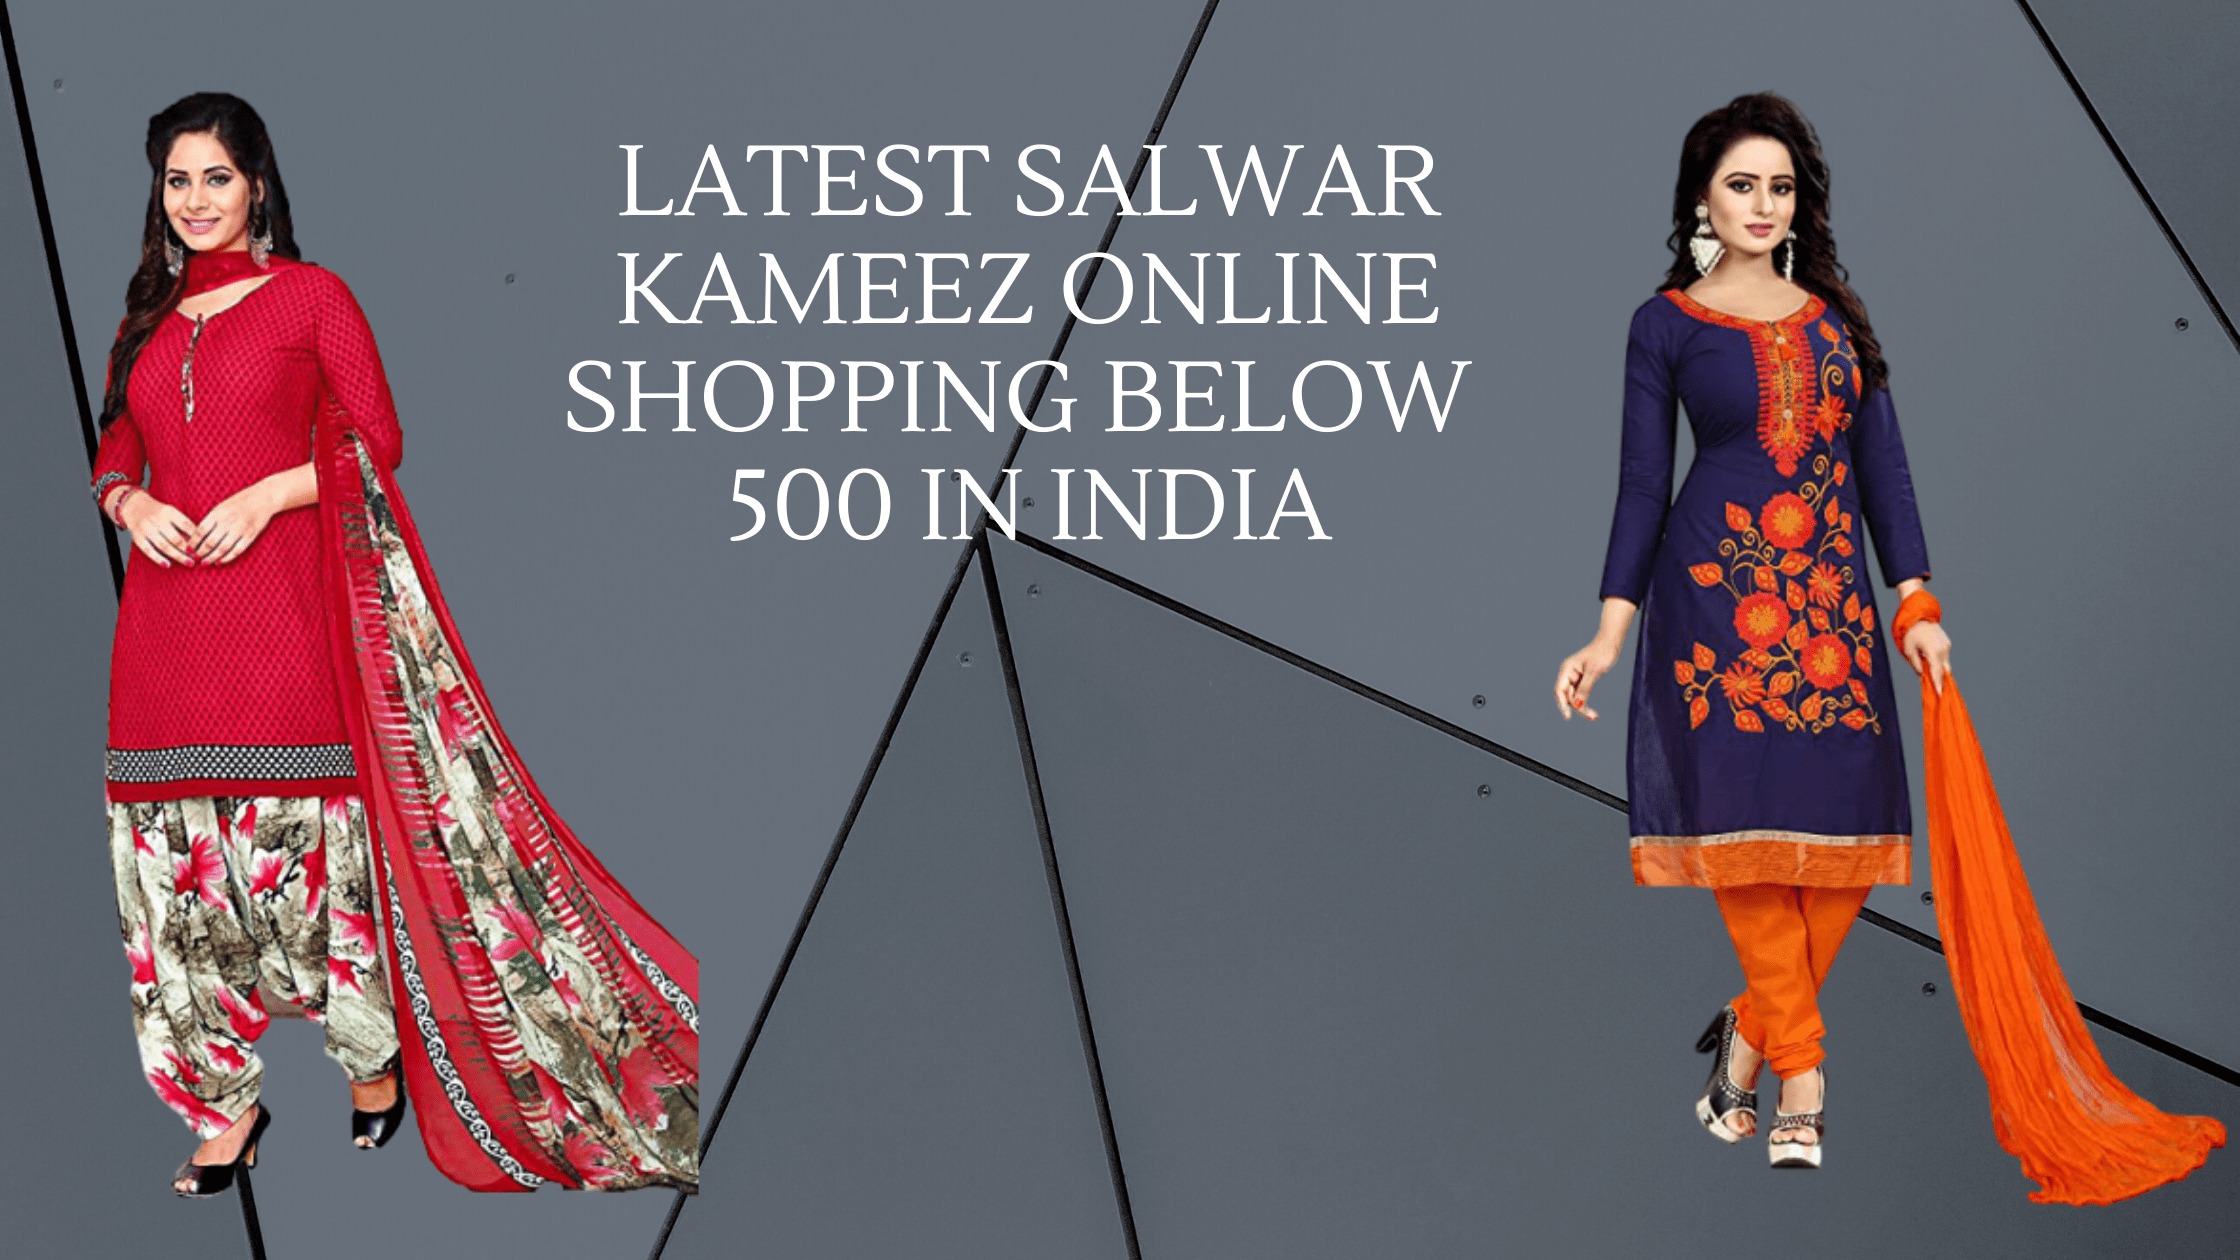 Salwar kameez online shopping below 500